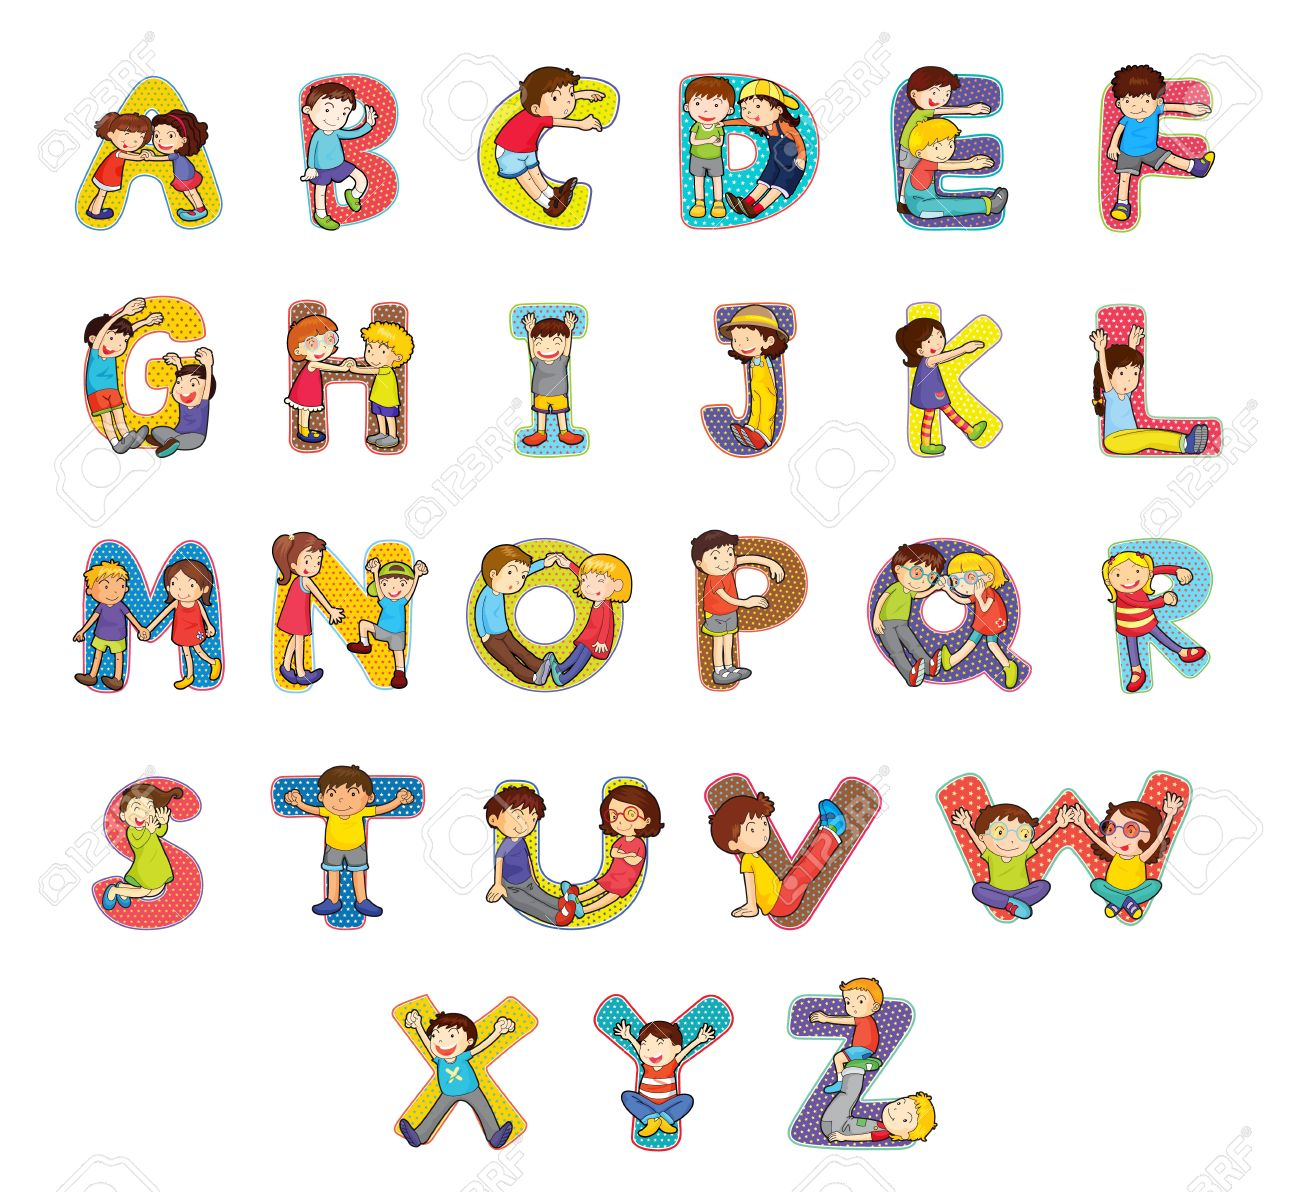 set of kid alphabet characters royalty free cliparts vectors and